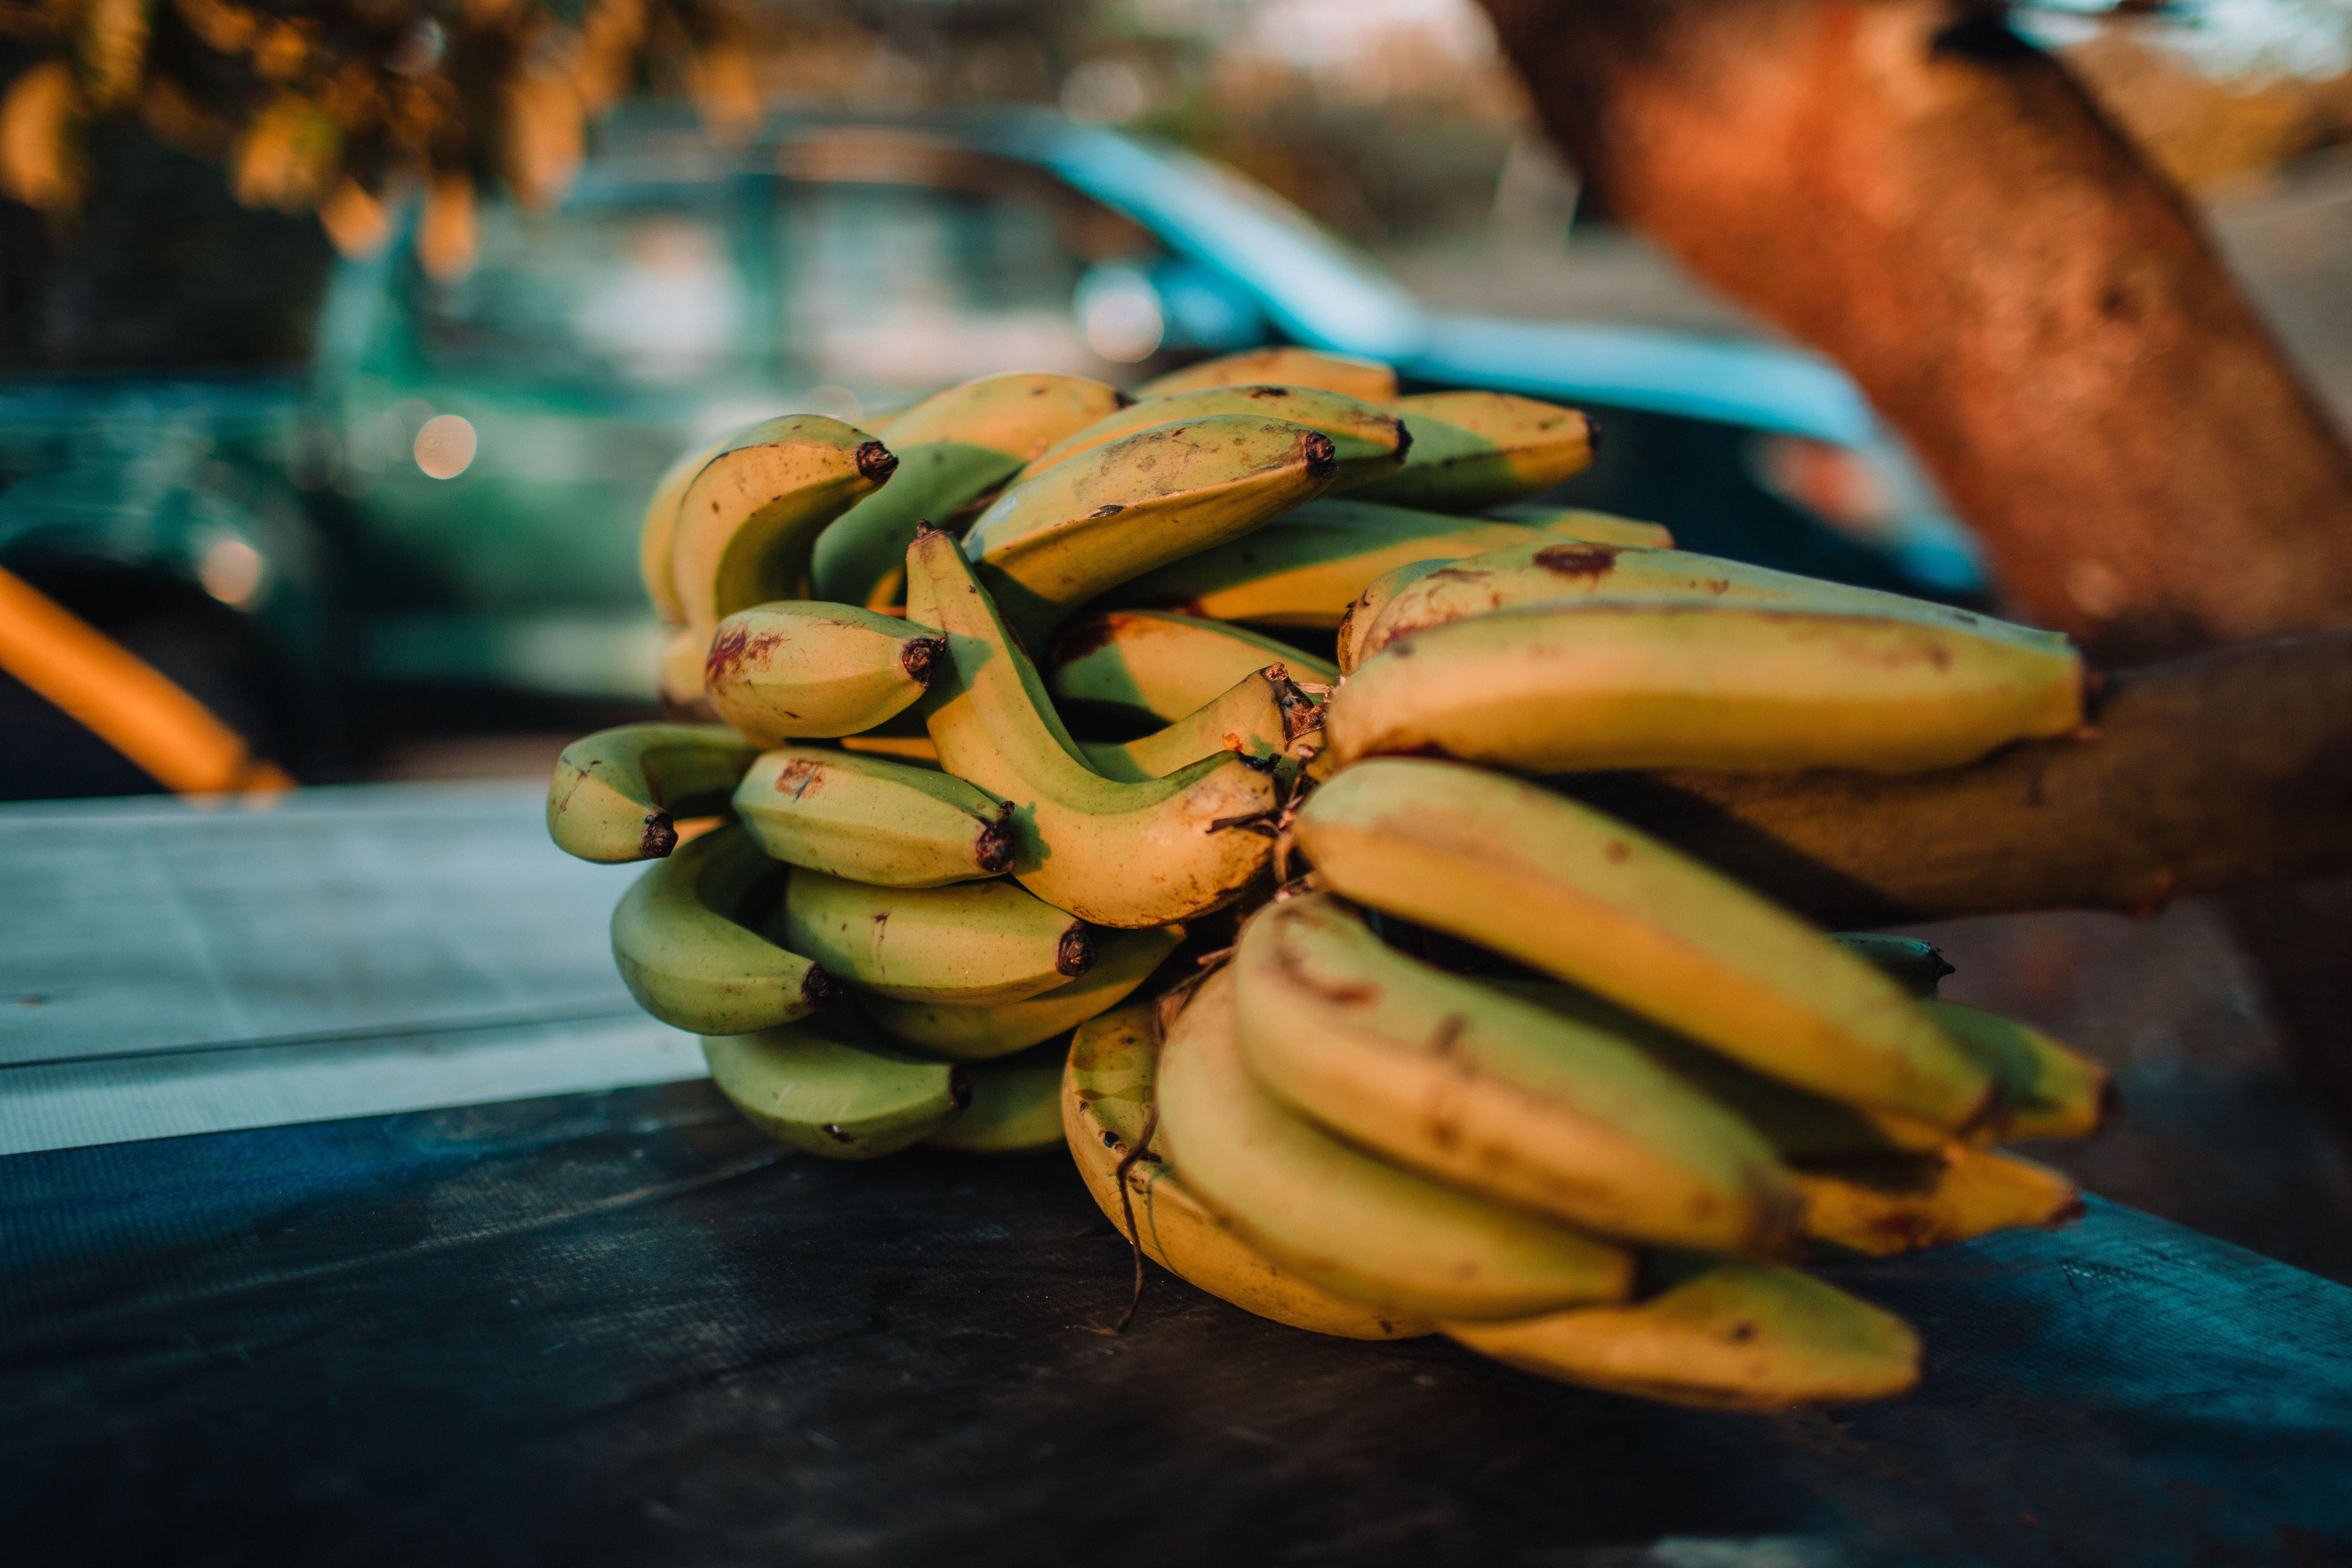 Banana nutrition content is important to check according